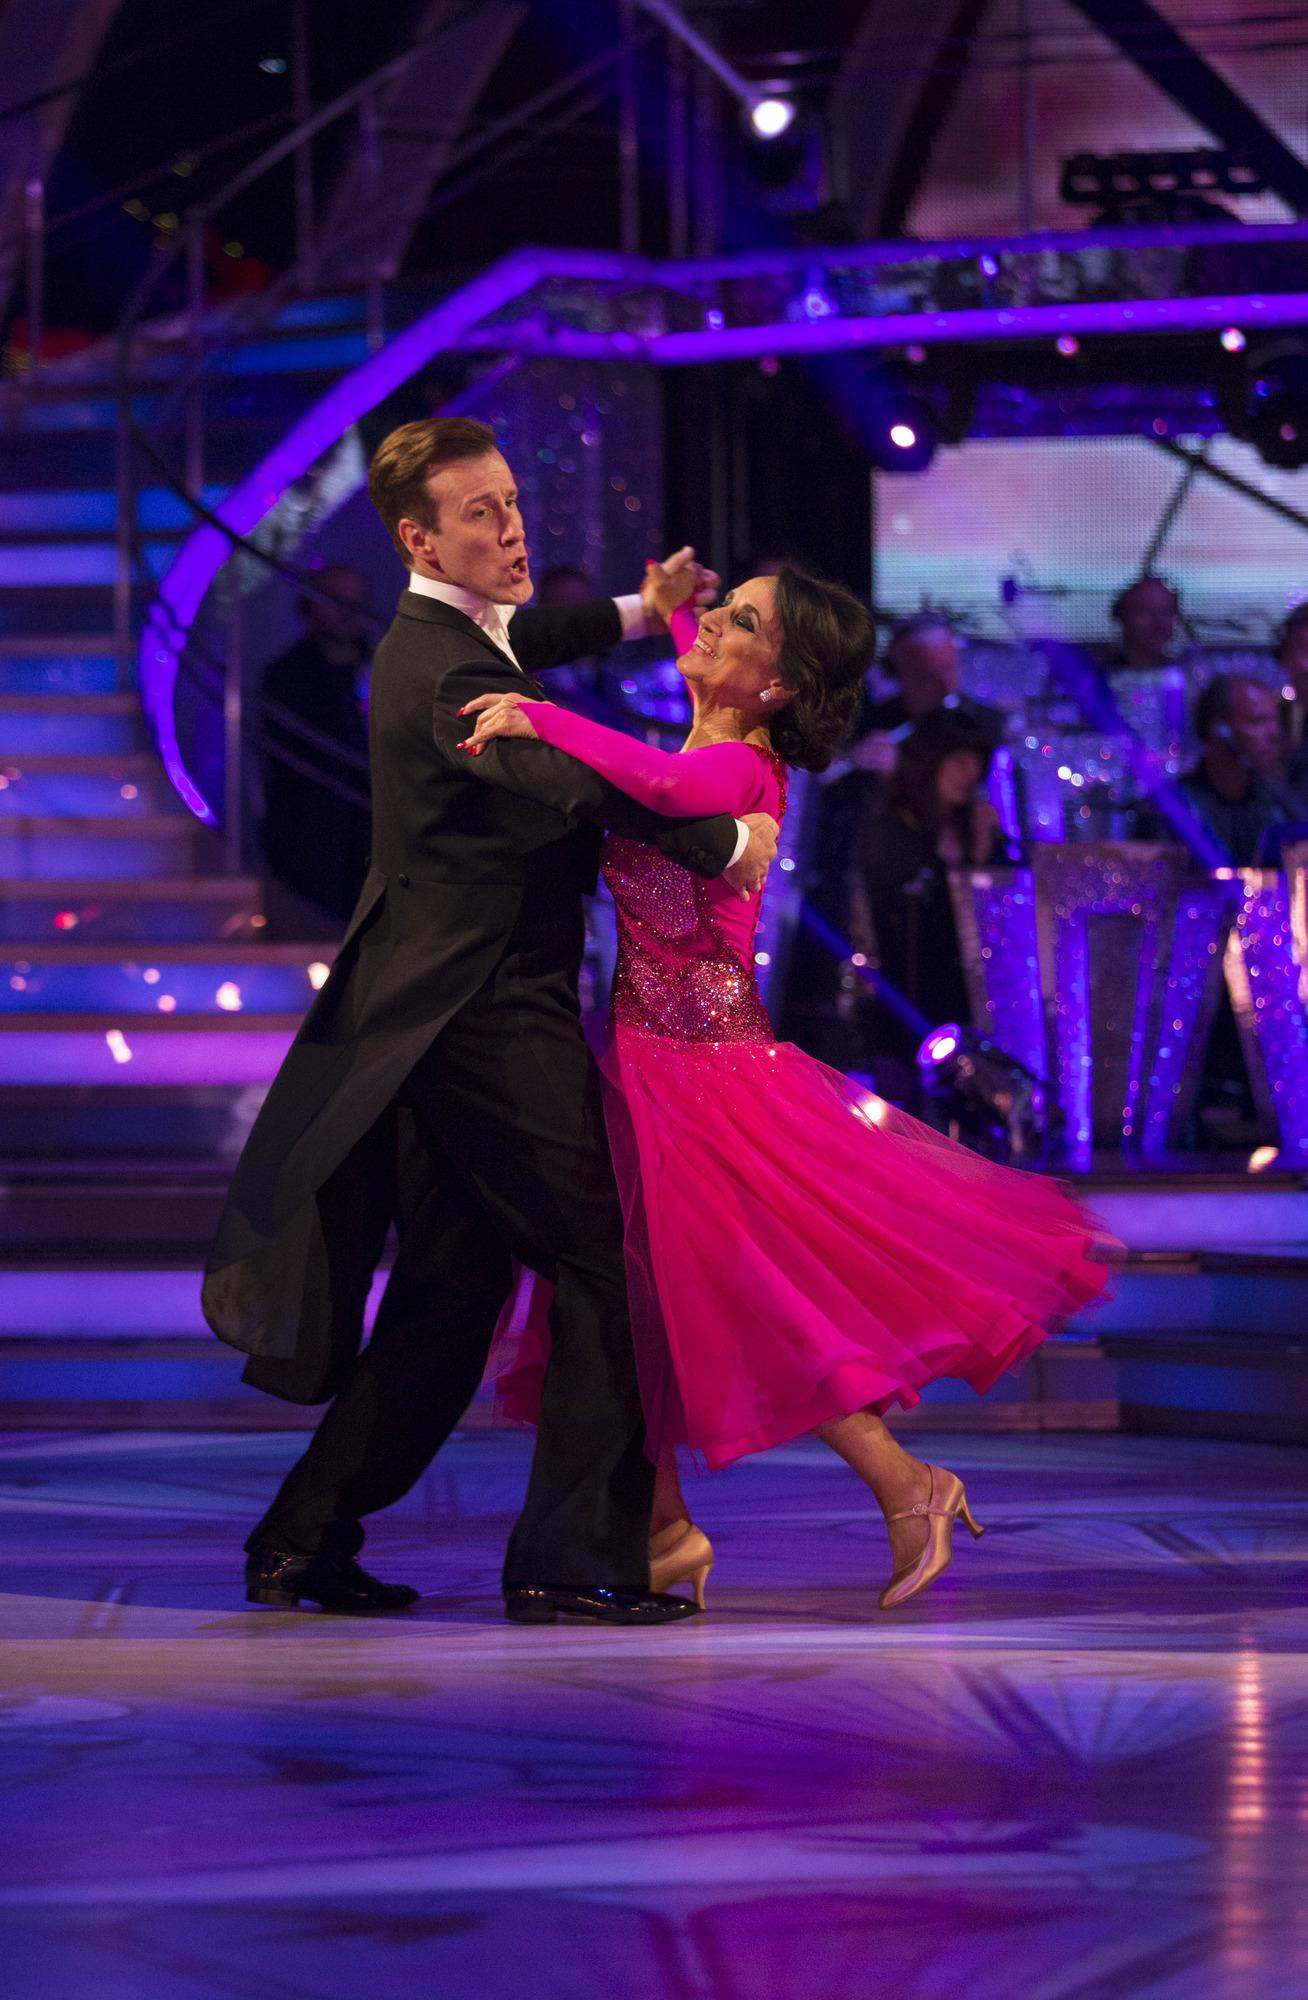 Strictly Come Dancing: The 9 best dance routines ever seen